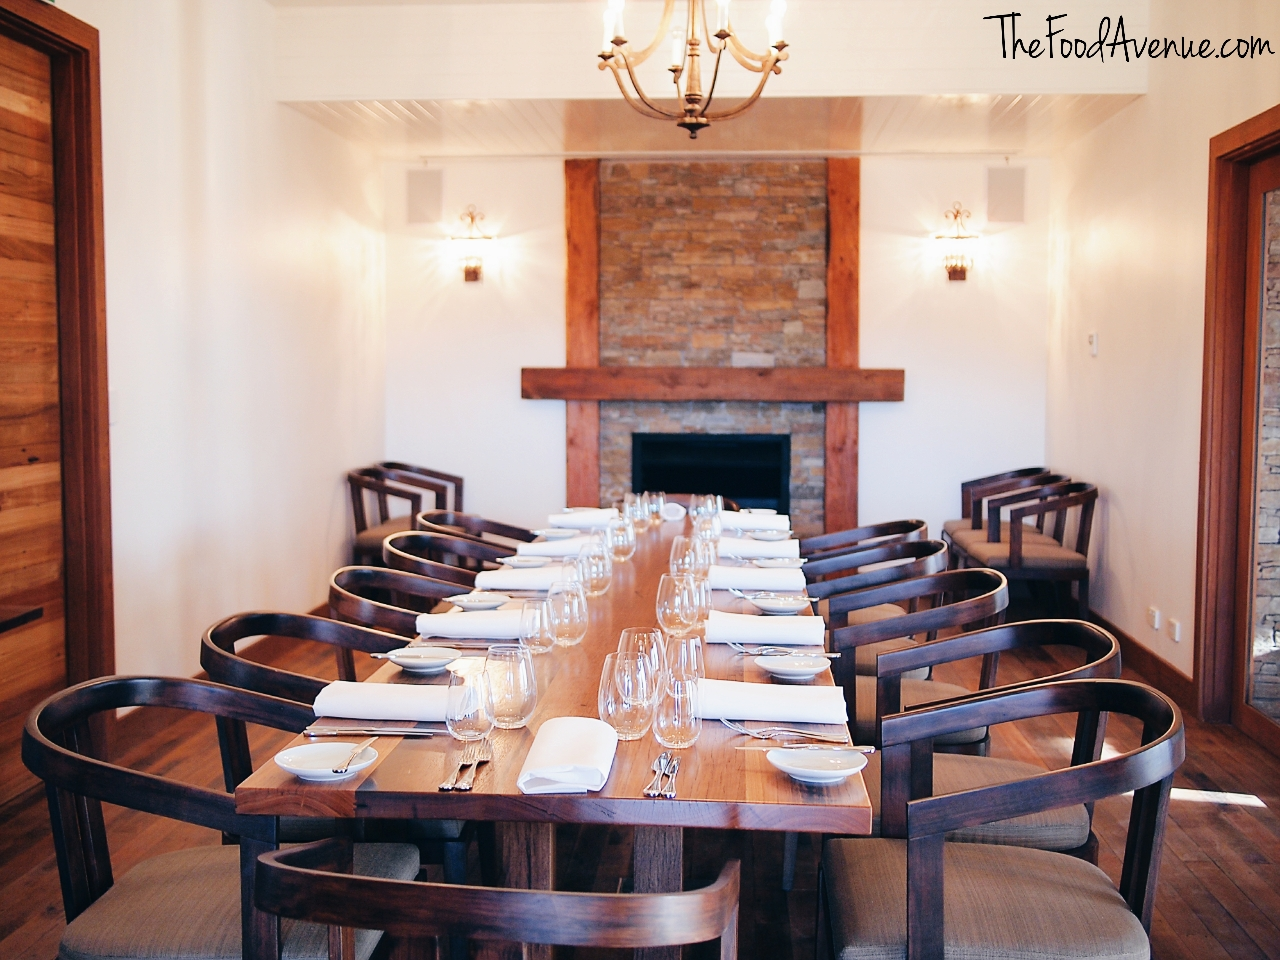 Pialligo Farmhouse Restaurant private dining room